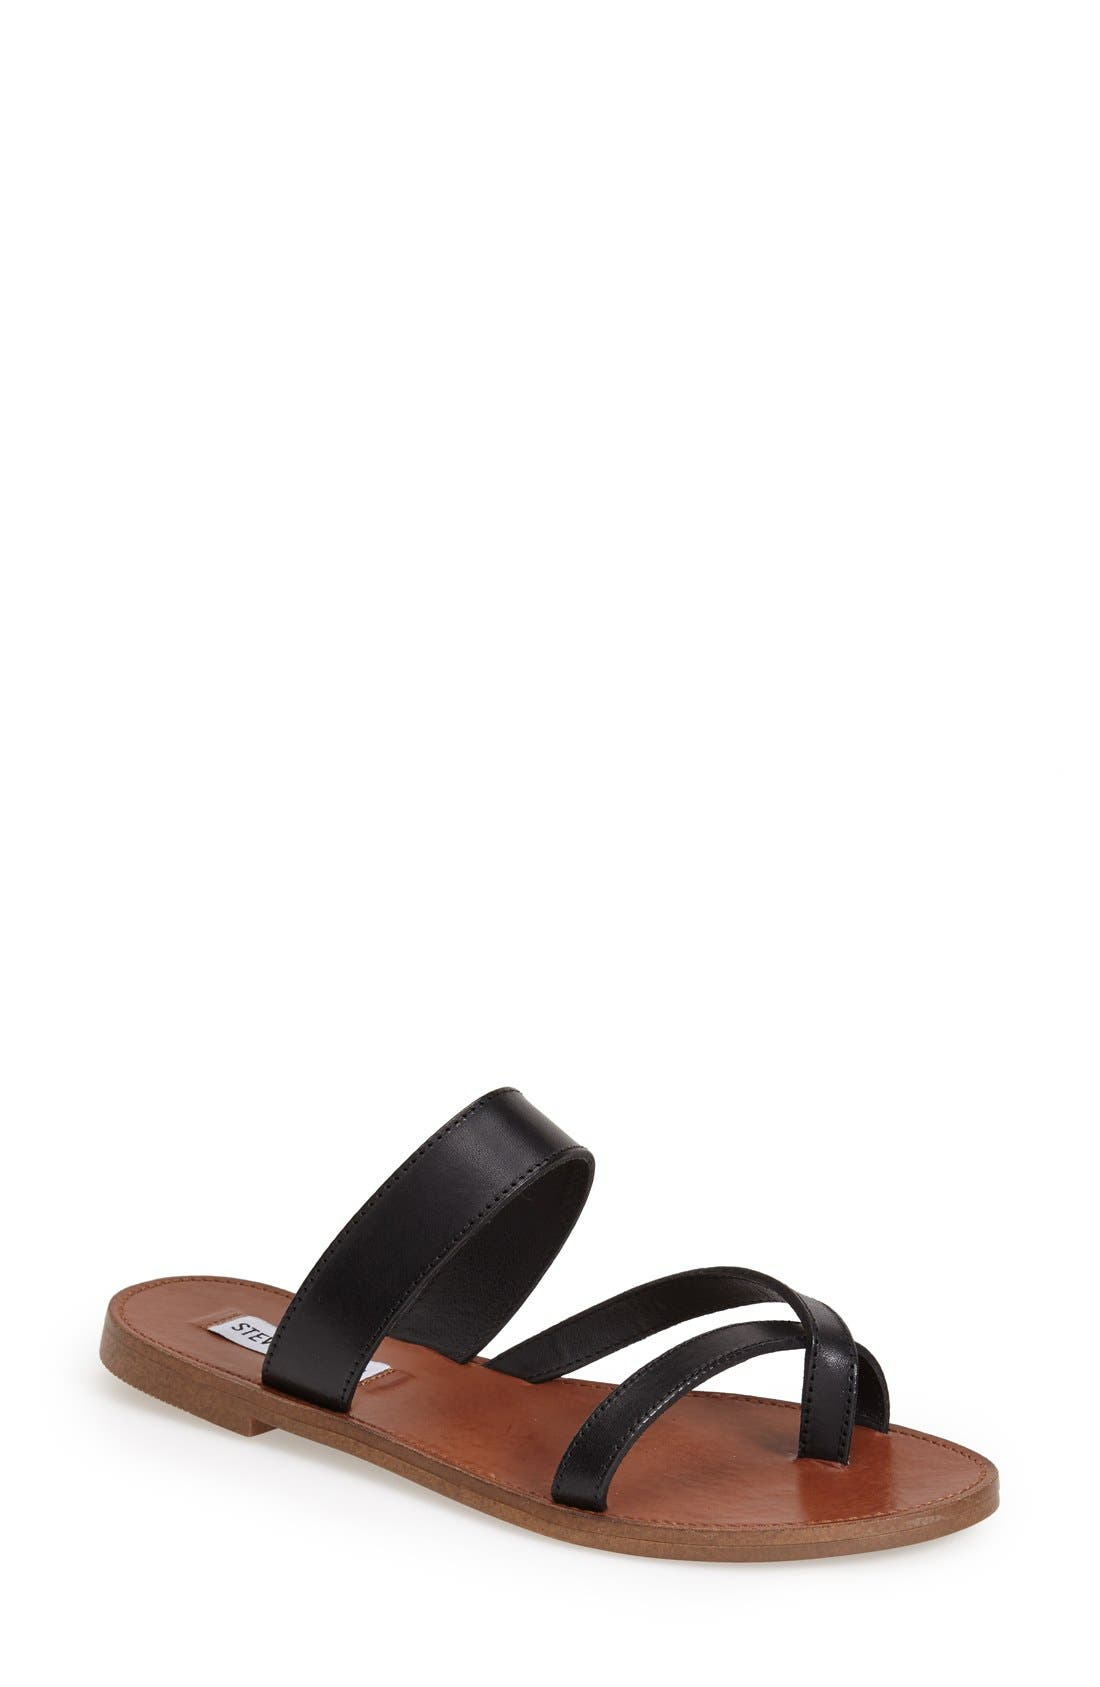 Main Image - Steve Madden 'Aintso' Strappy Leather Toe Ring Sandal (Women)